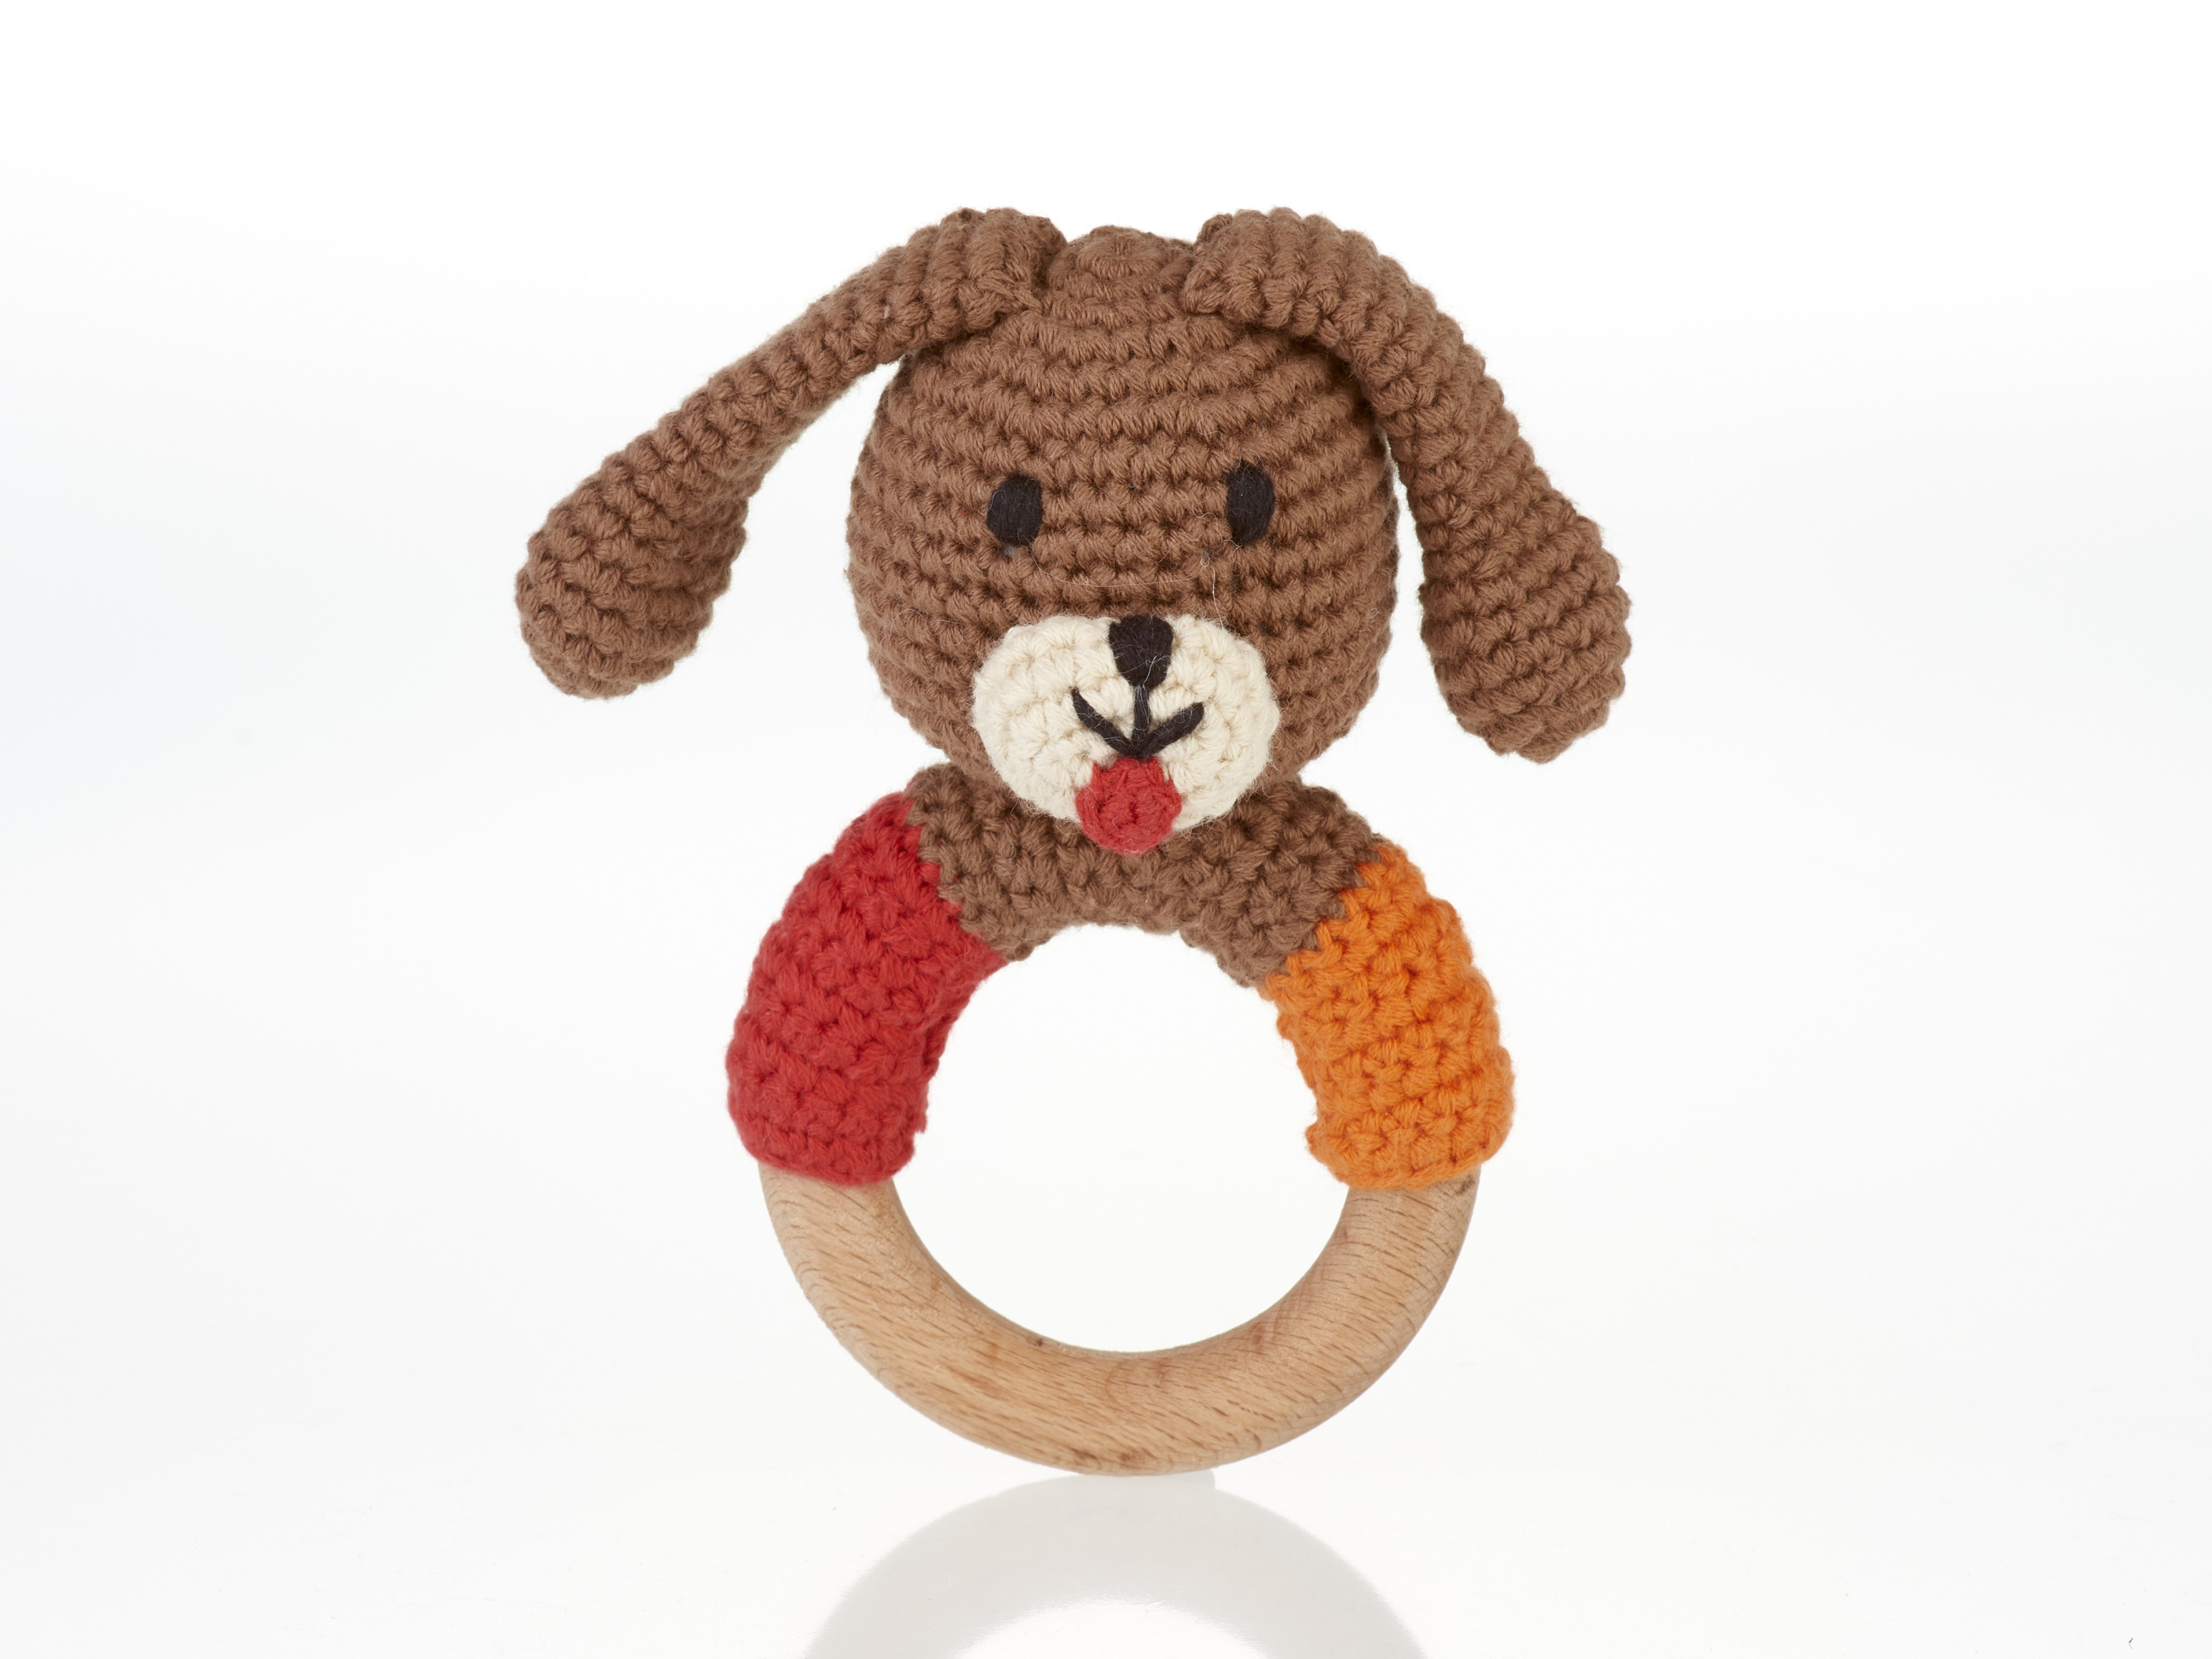 pebble-Wooden ring rattle-dog boy